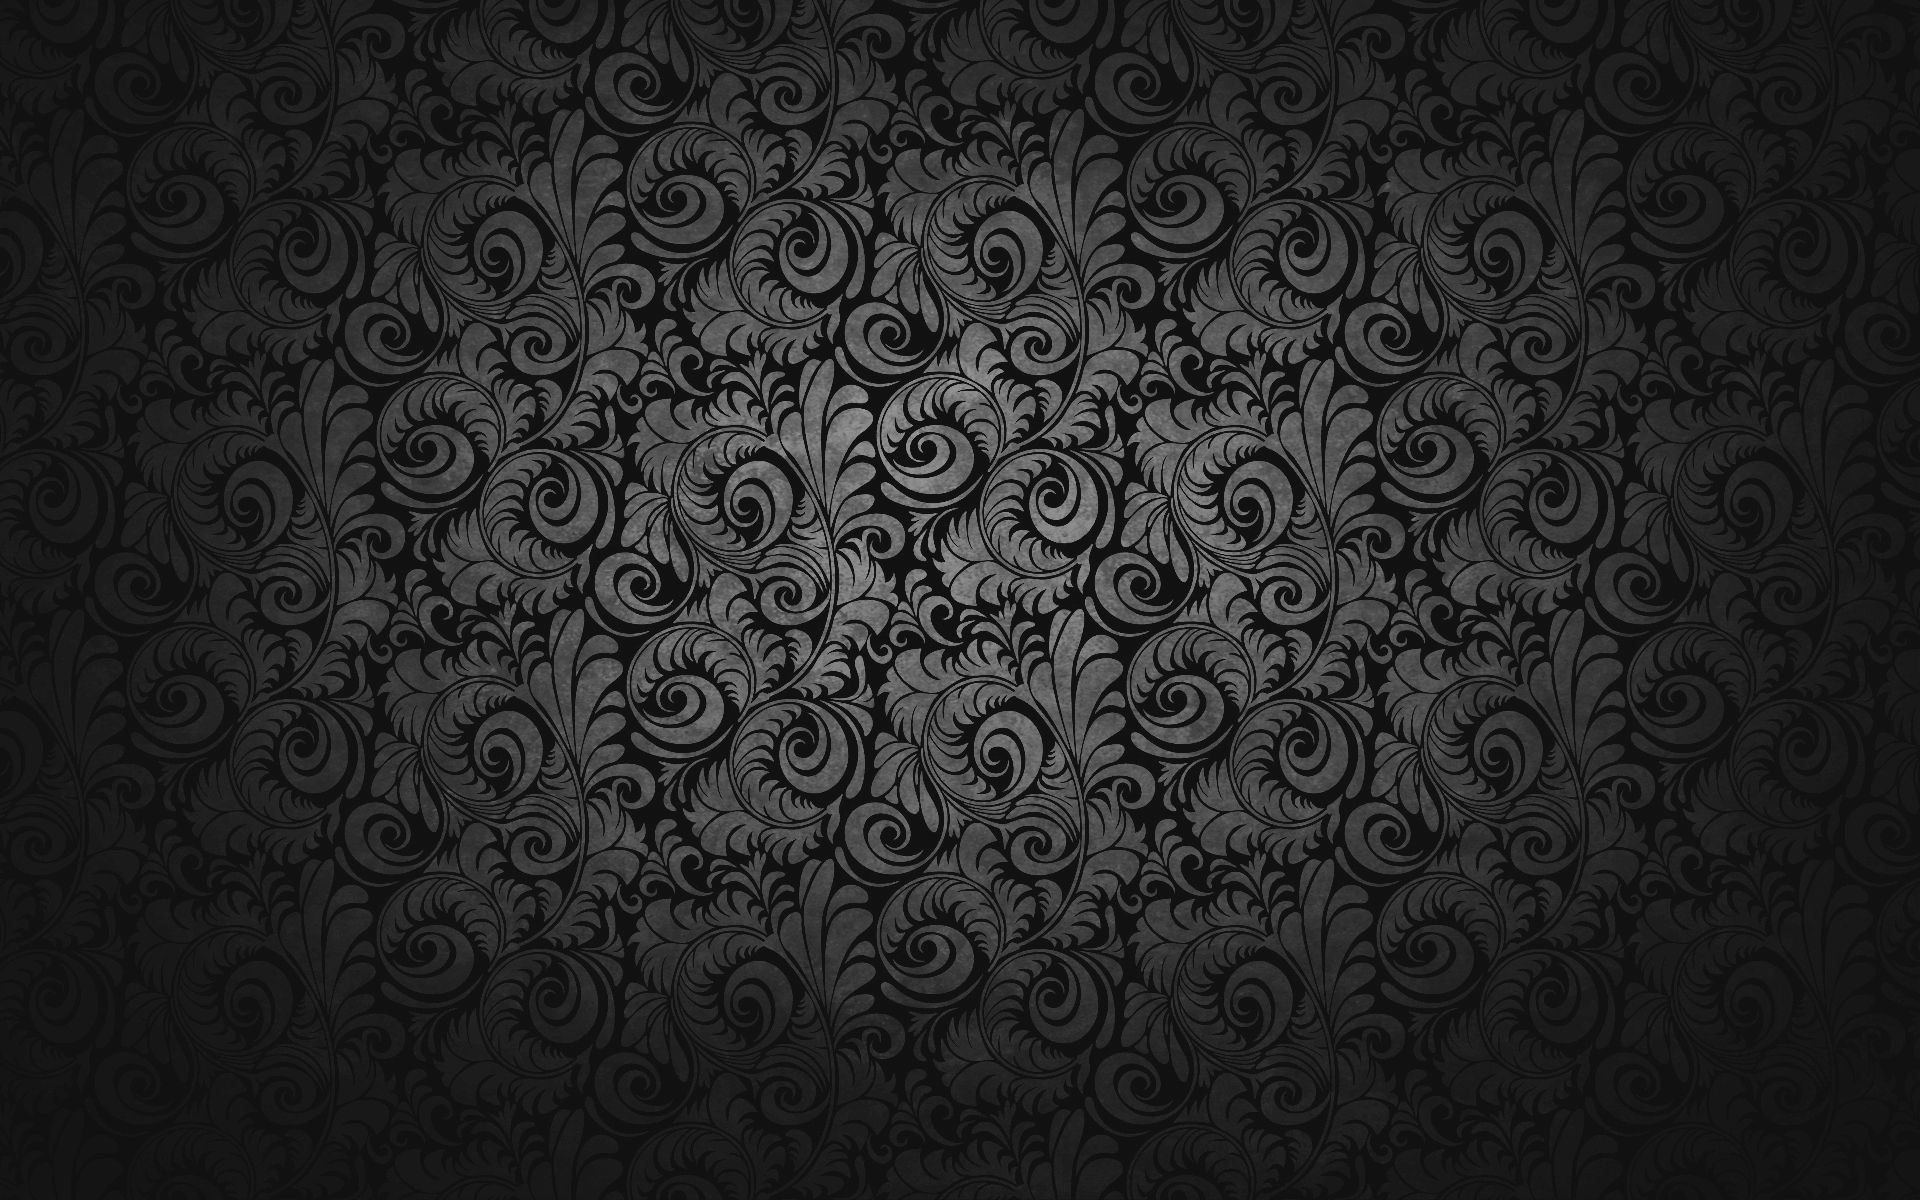 Dark Design Wallpapers Top Free Dark Design Backgrounds Wallpaperaccess